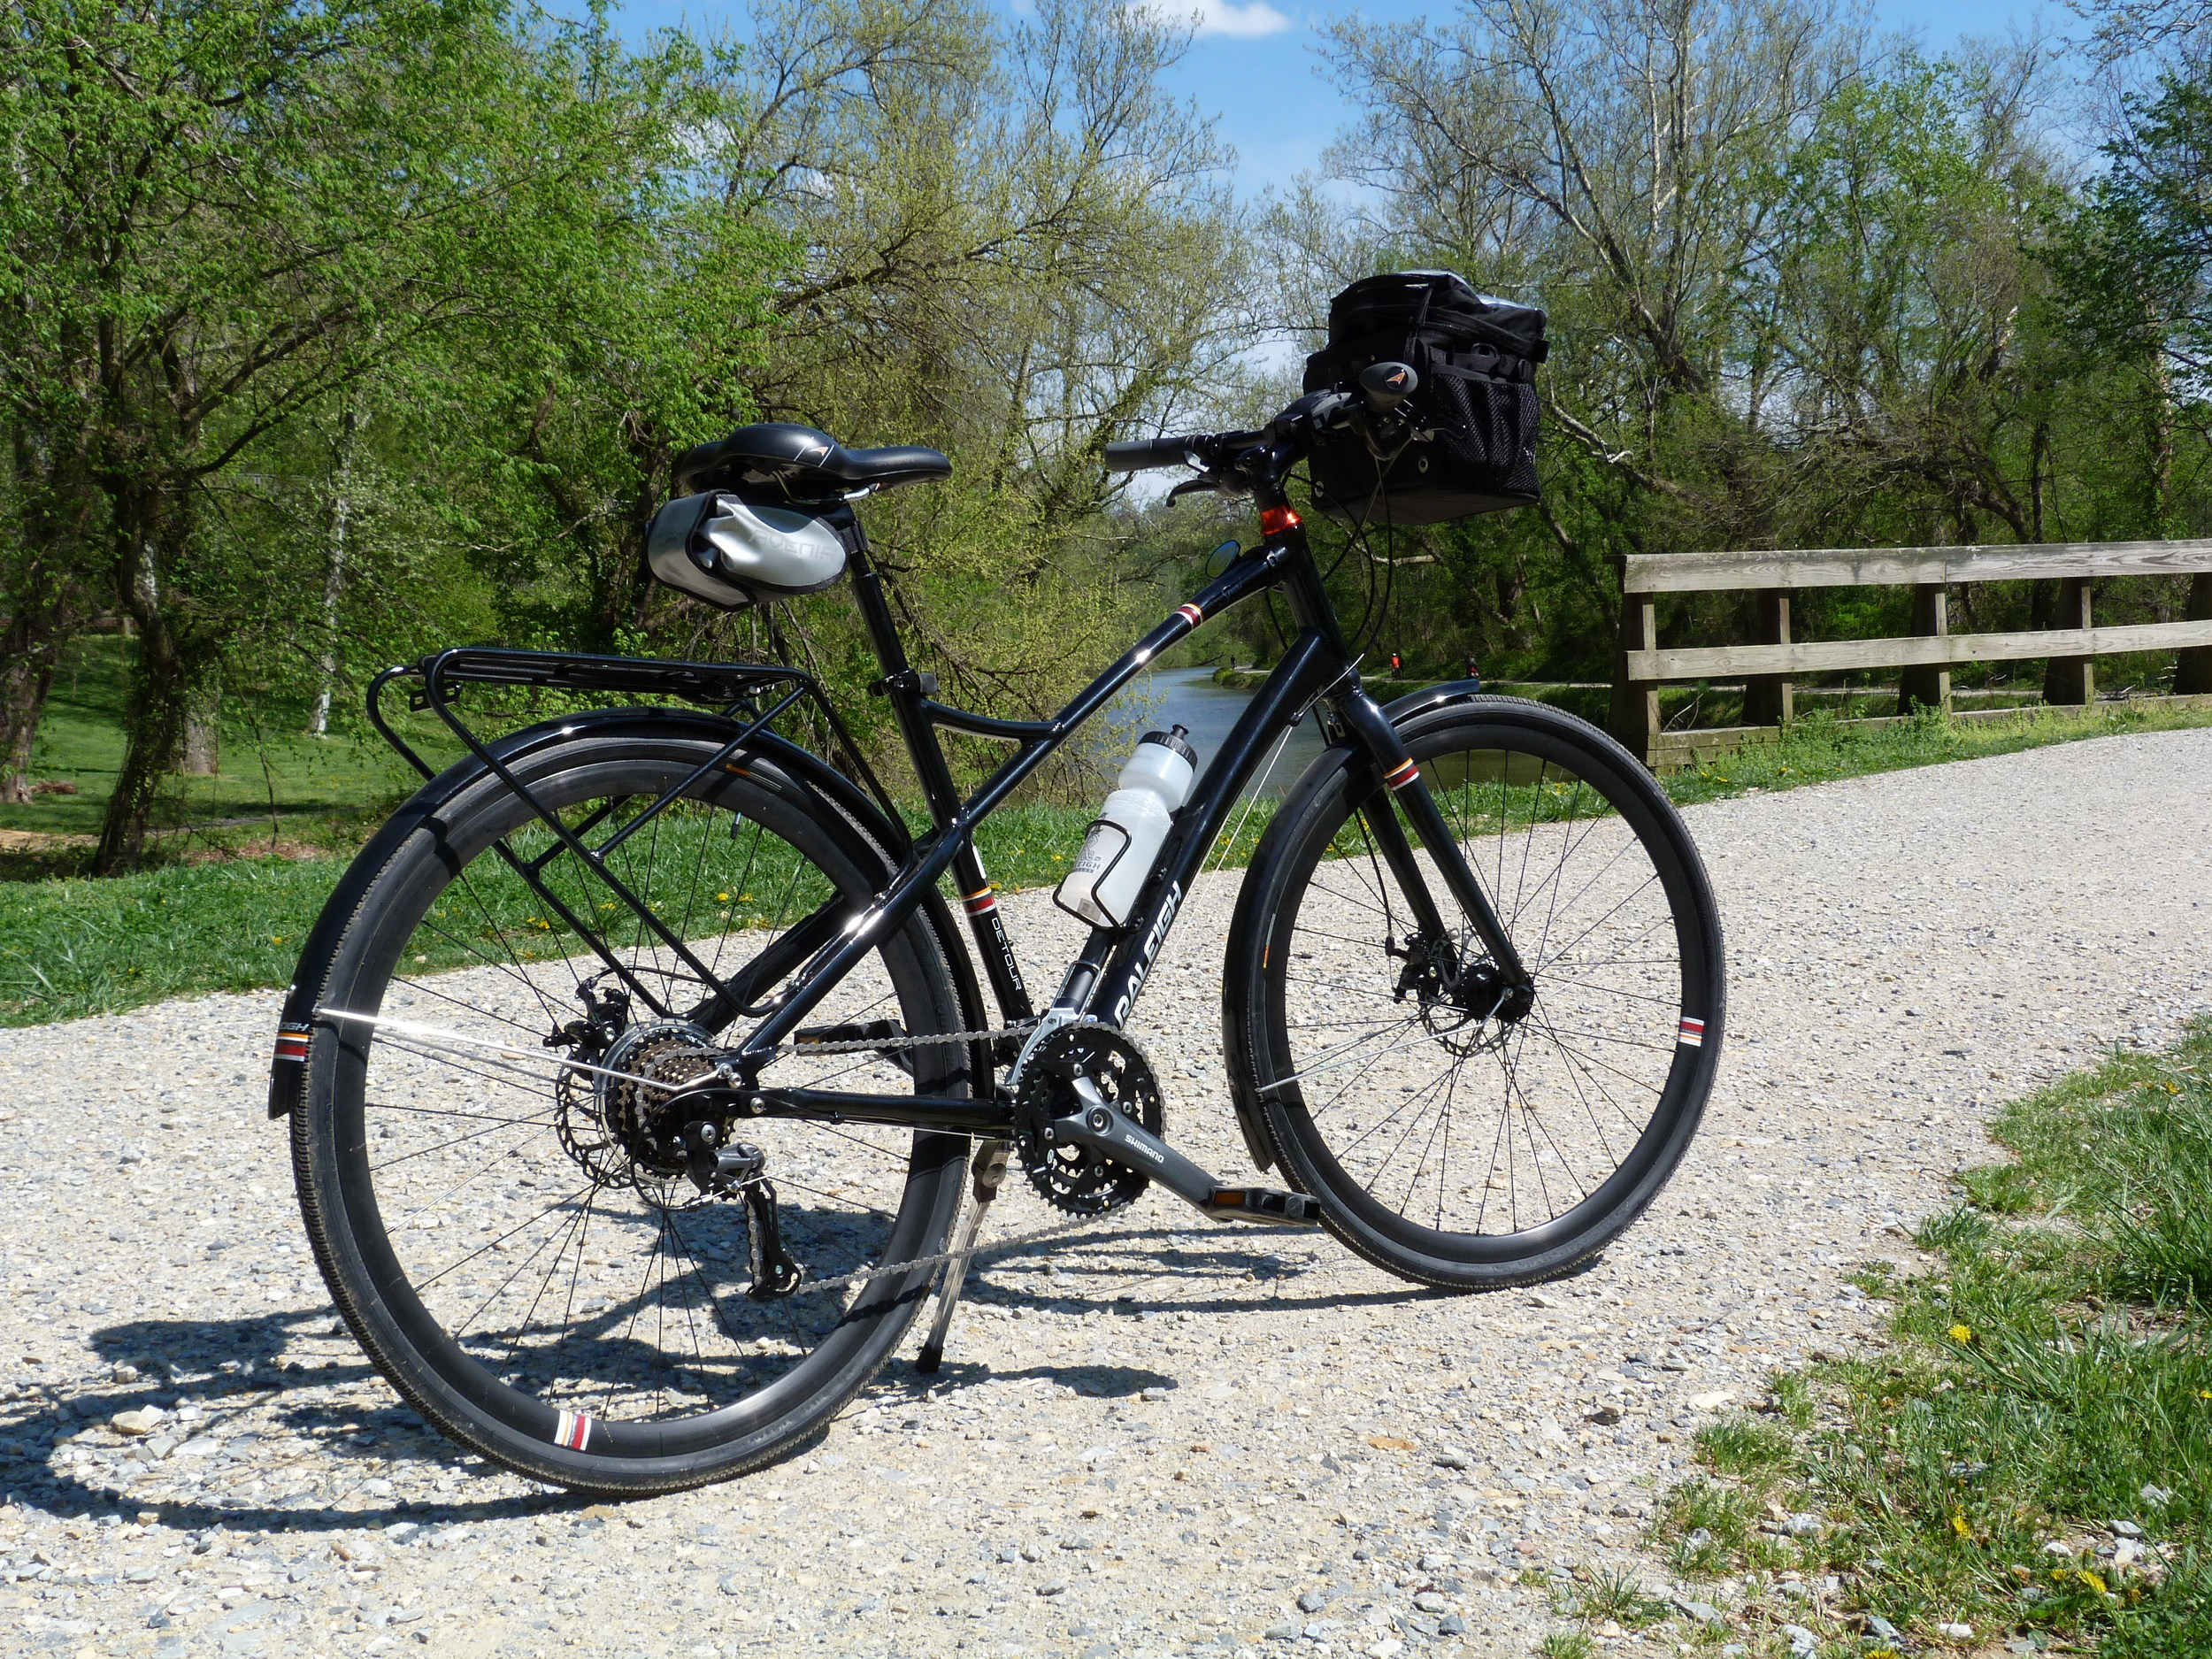 My Raleigh Detour City Sport, with (very) handy handlebar bag, where I kept my camera and canal map ready for quick use at any instant.